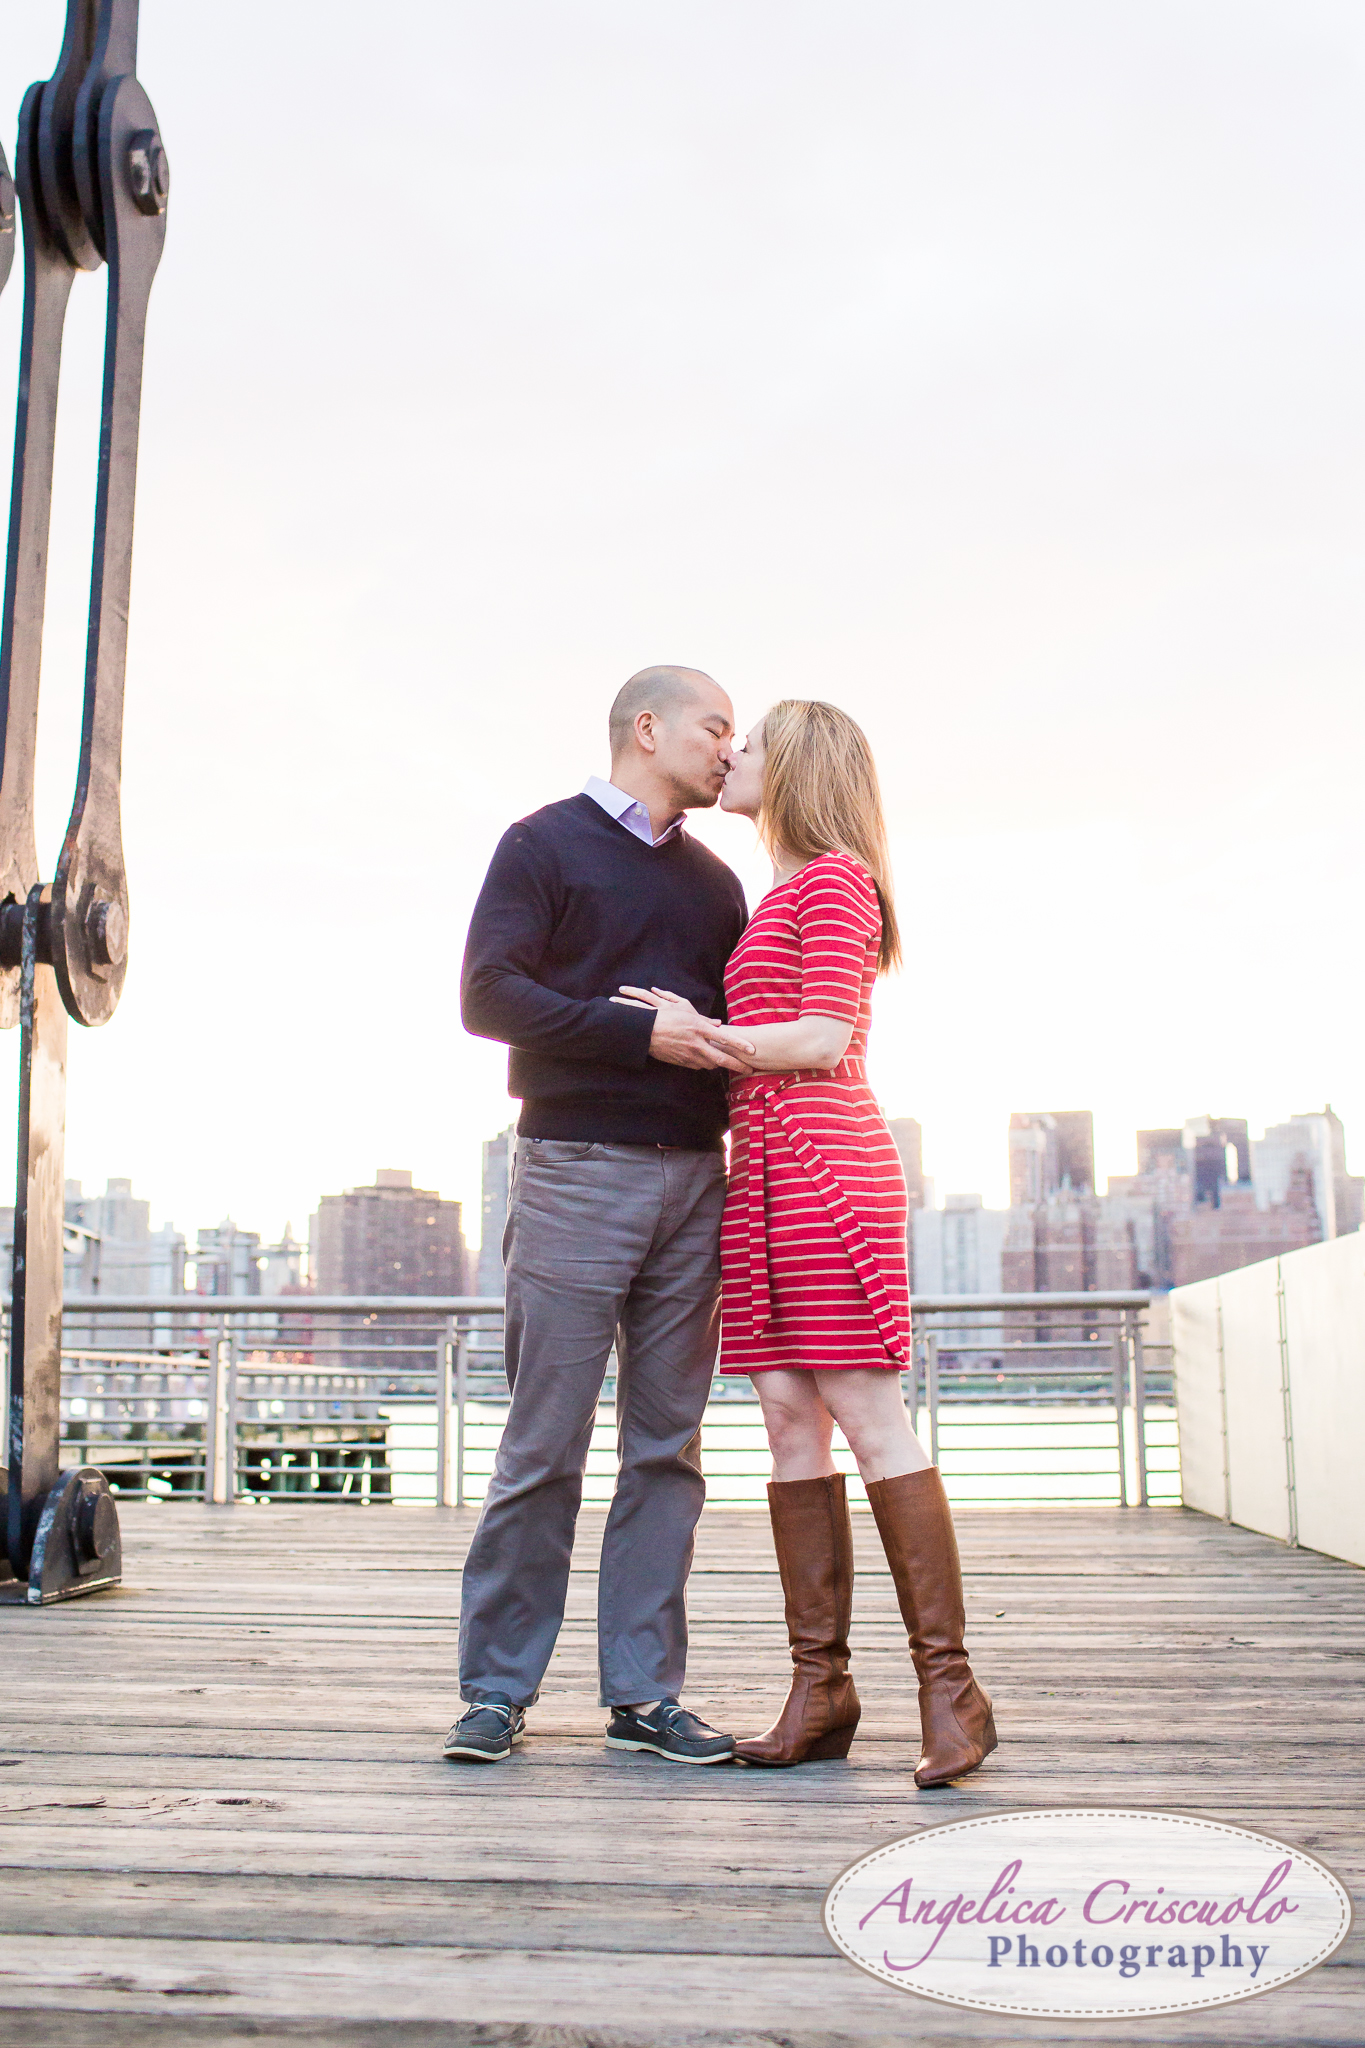 Boardwalk Queens Long Island City New York Engagement Photos in Gantry State Park Sunset